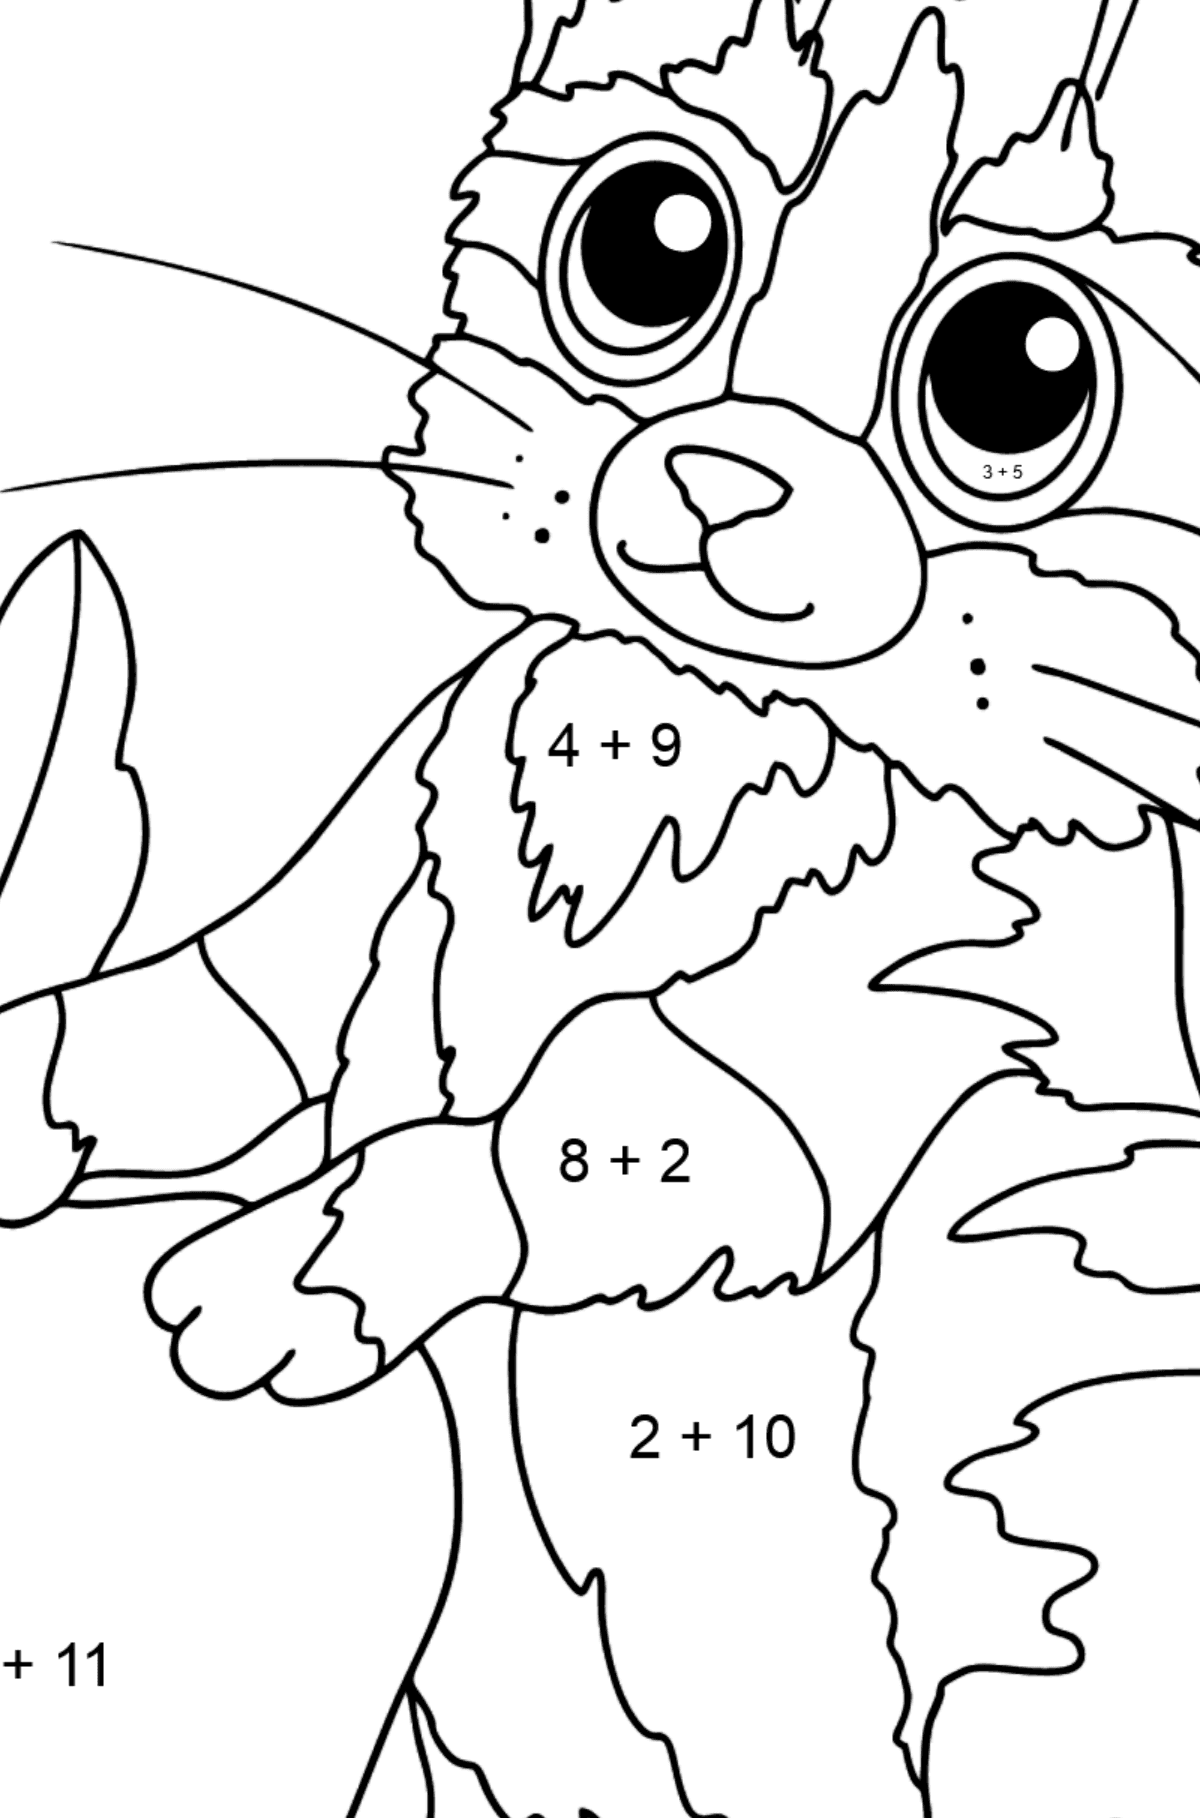 A Kitten is Playing with an Apple - Stampy cat coloring page - Math Coloring - Addition for Kids